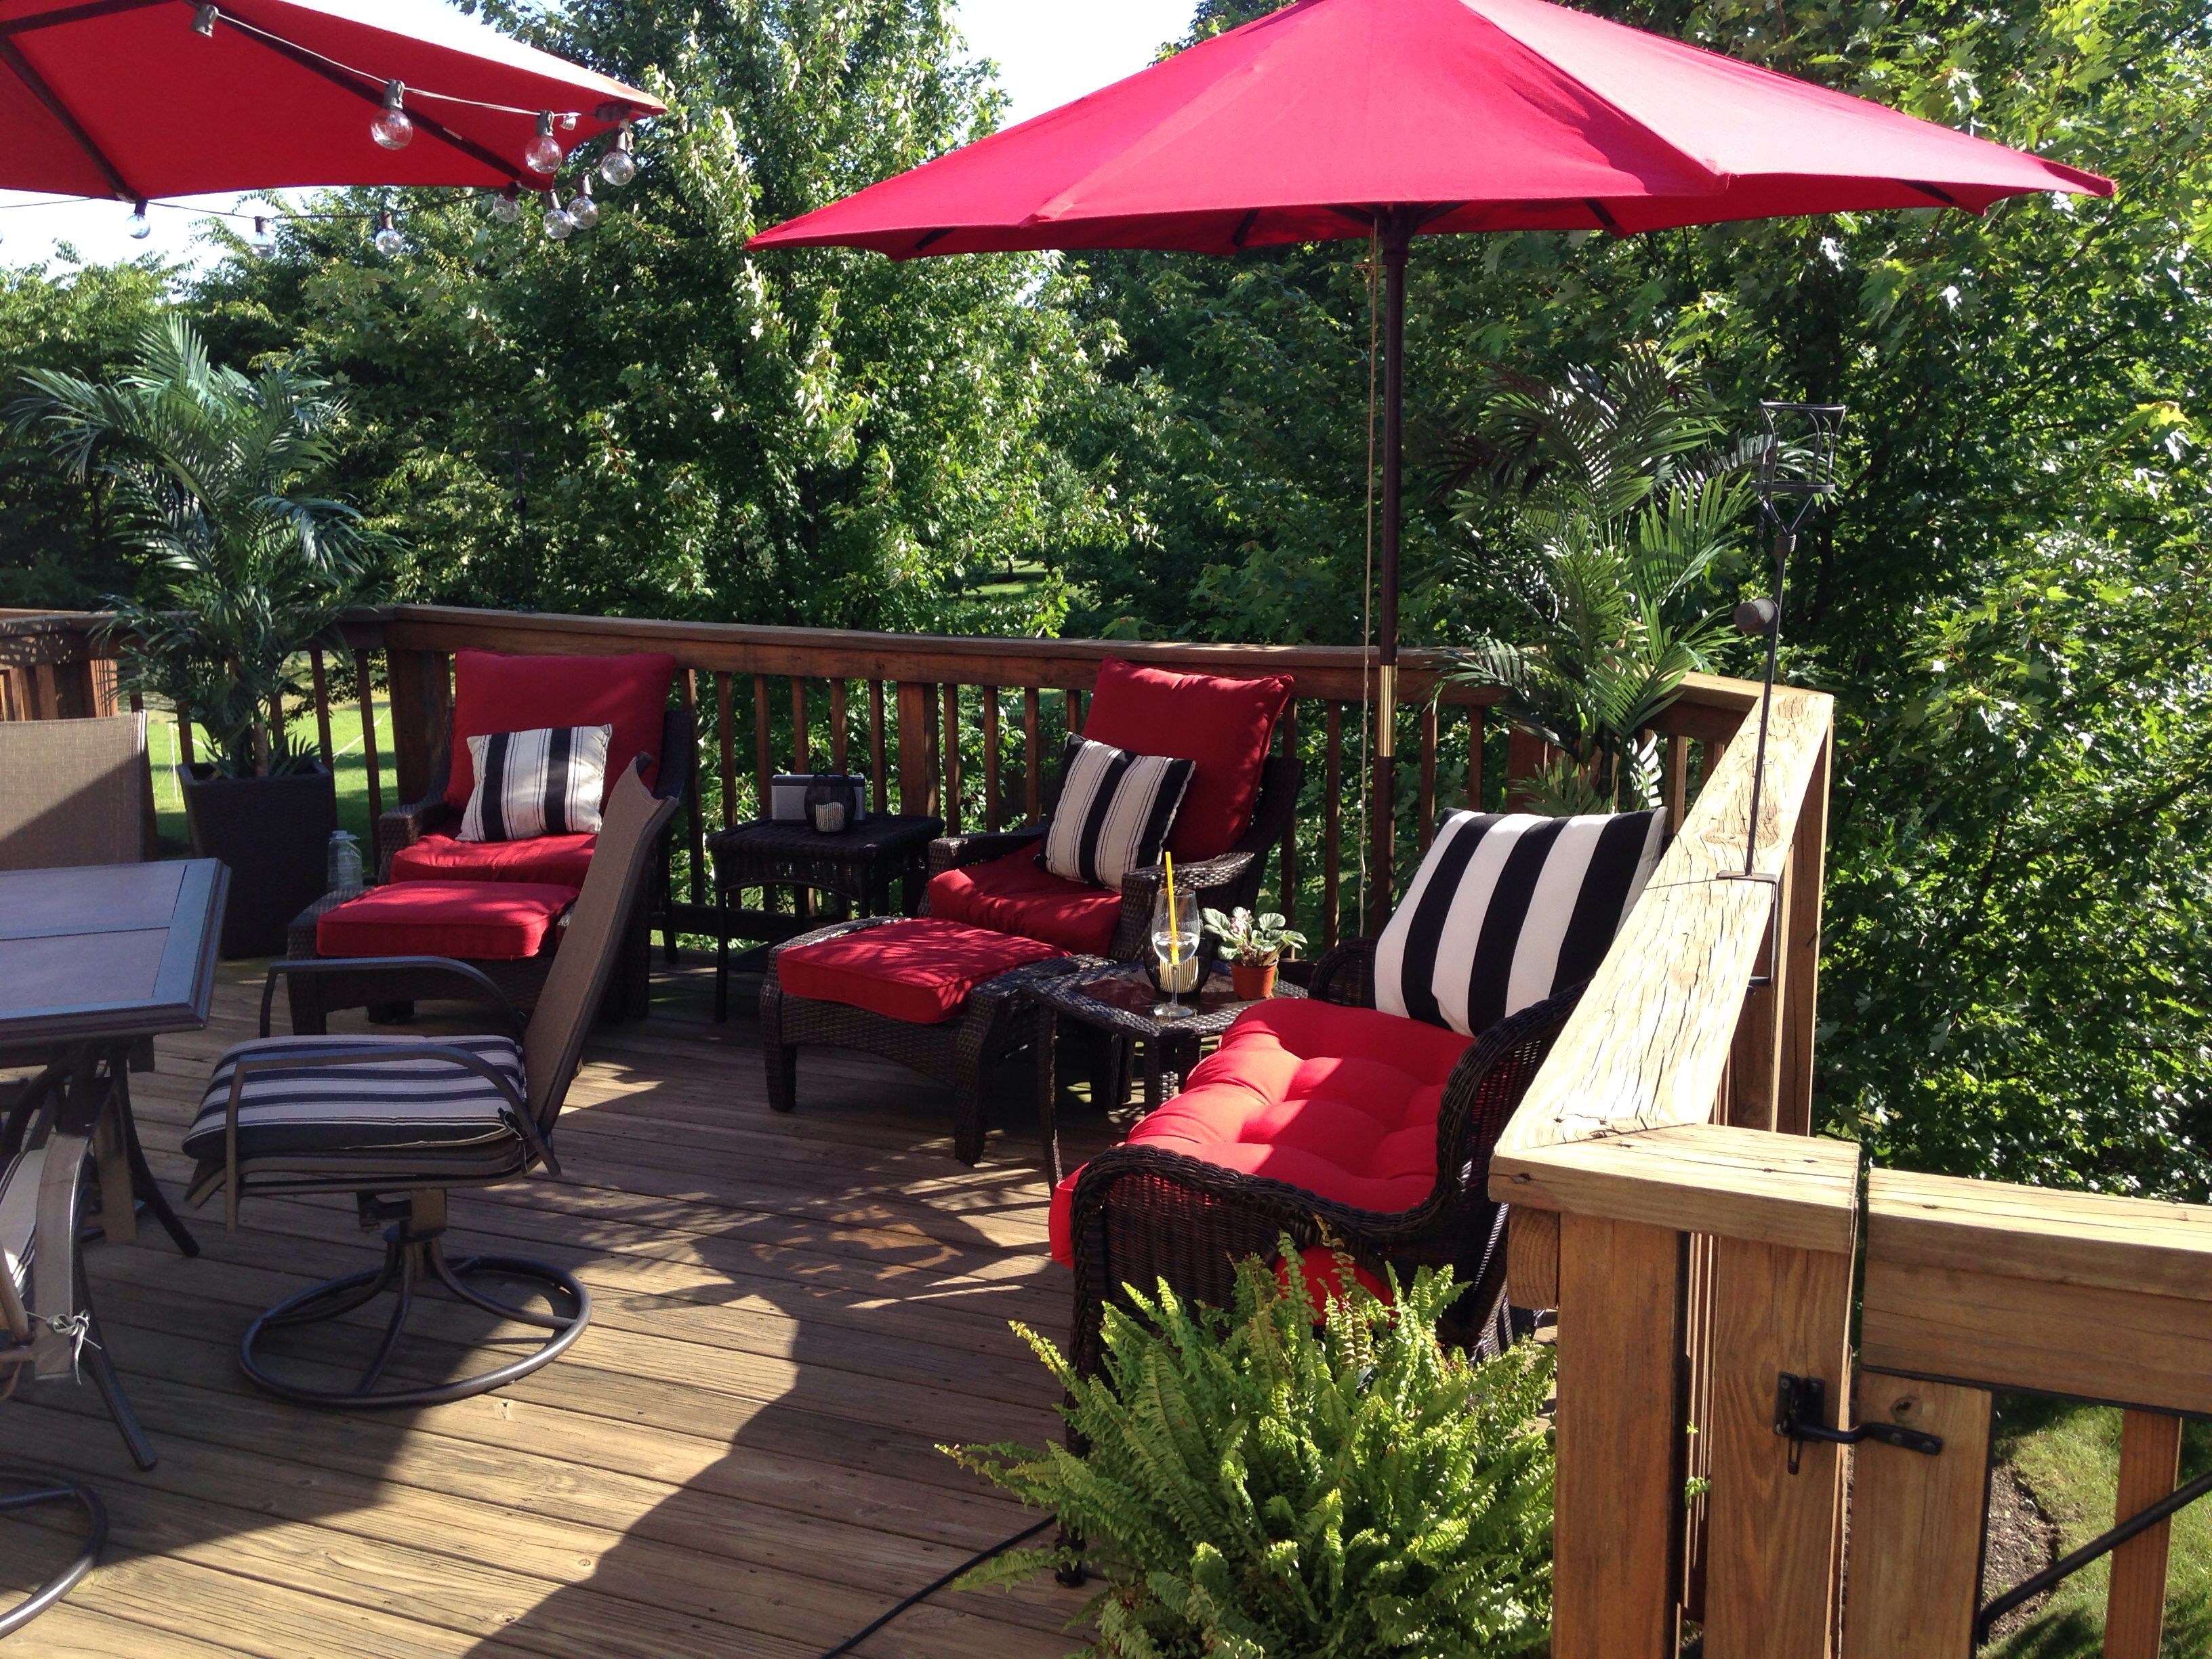 Red Patio Furniture Cushions With Black And White Striped Pillows